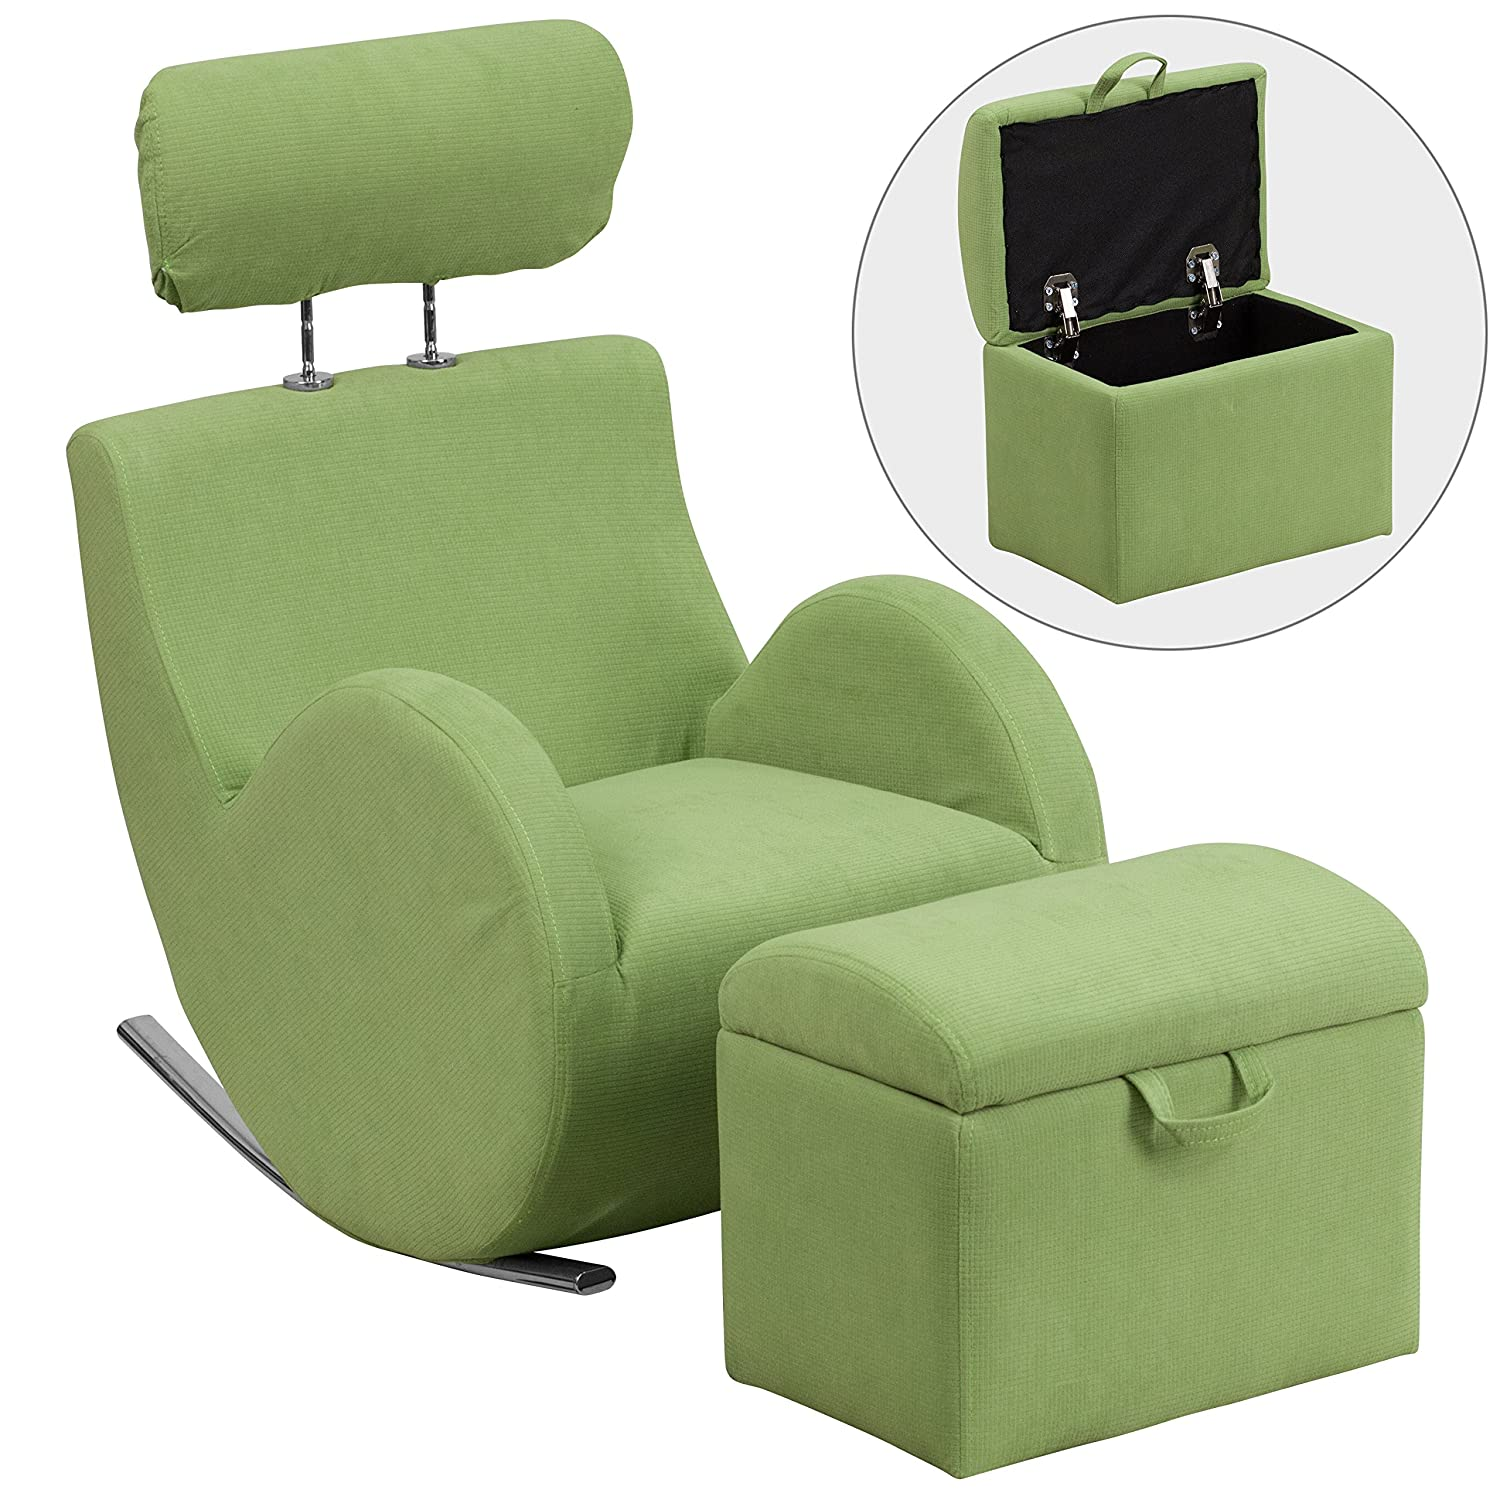 Flash Furniture LD-2025-GN-GG HERCULES Series Green Fabric Rocking Chair with Storage Ottoman